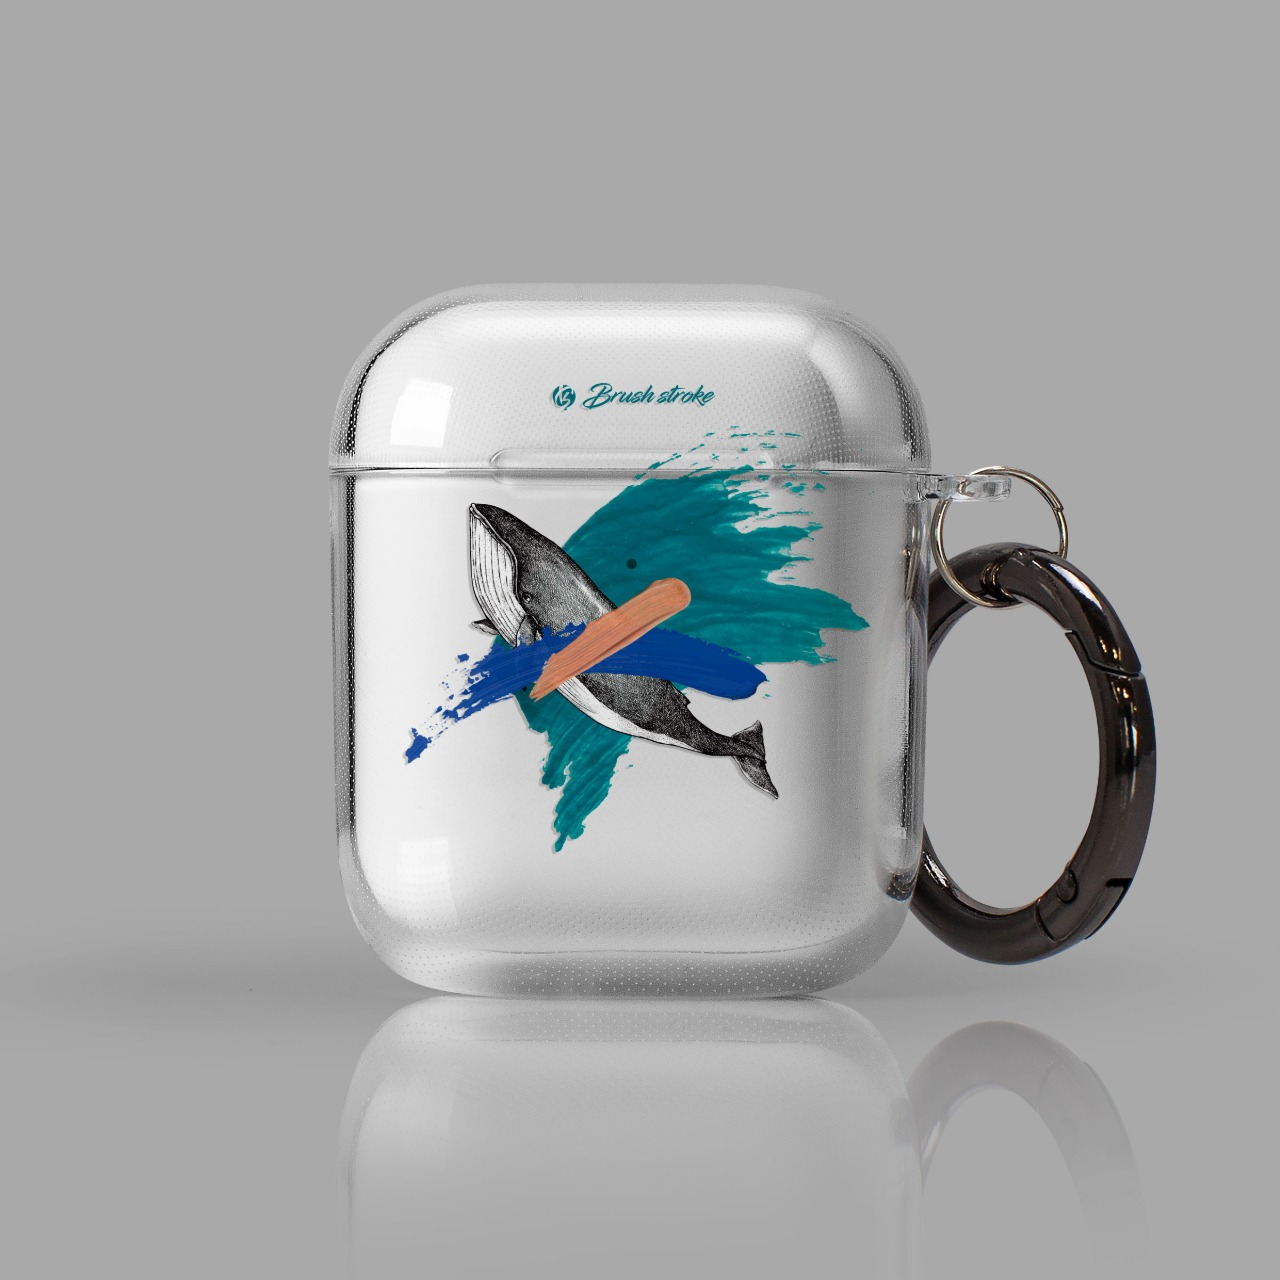 [Airpods cases] Brushstrokes No.16